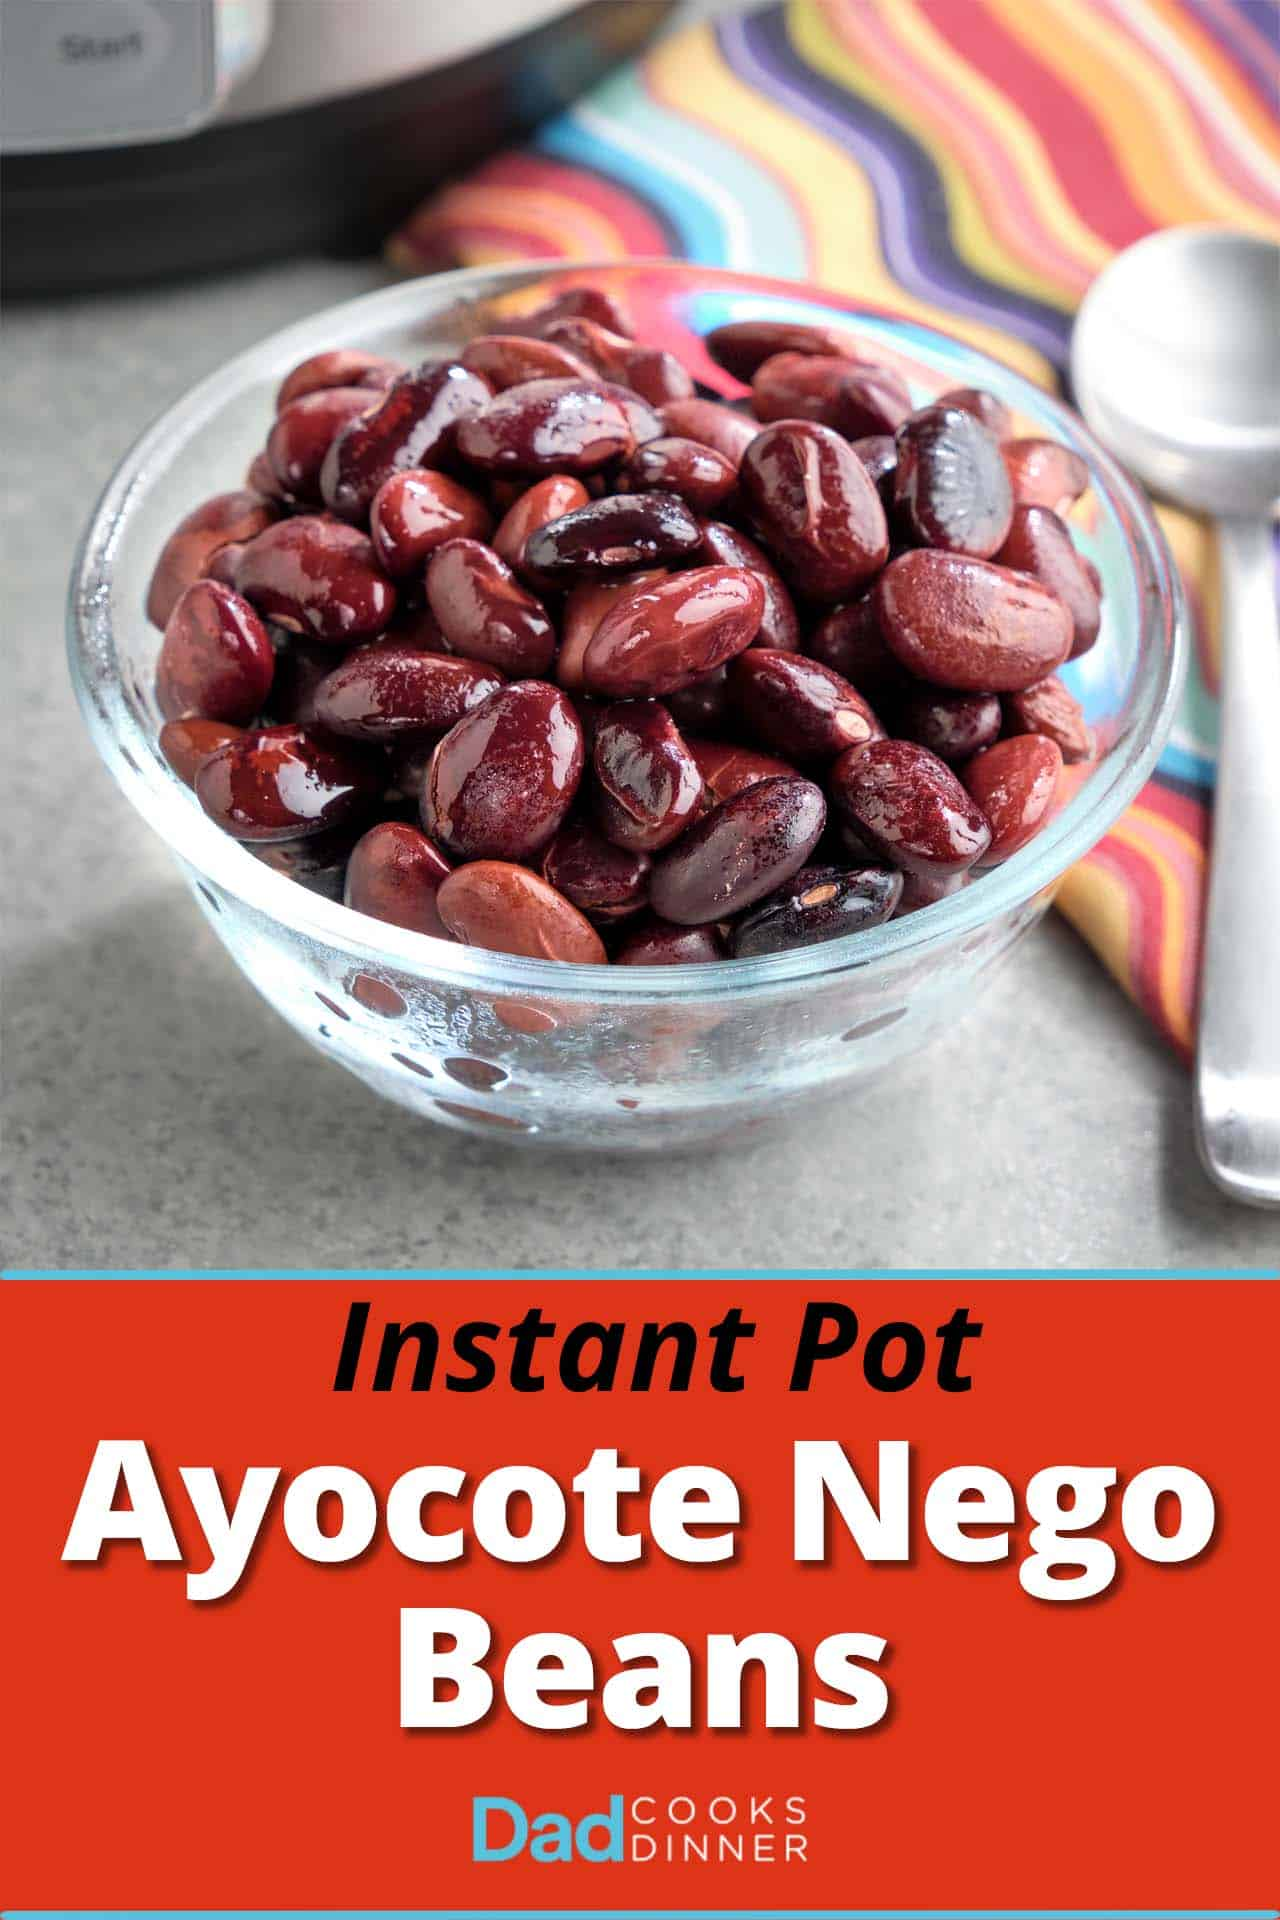 A bowl of cooked Ayocote Negro beans, with a spoon, a napkin, and a pressure cooker in the background